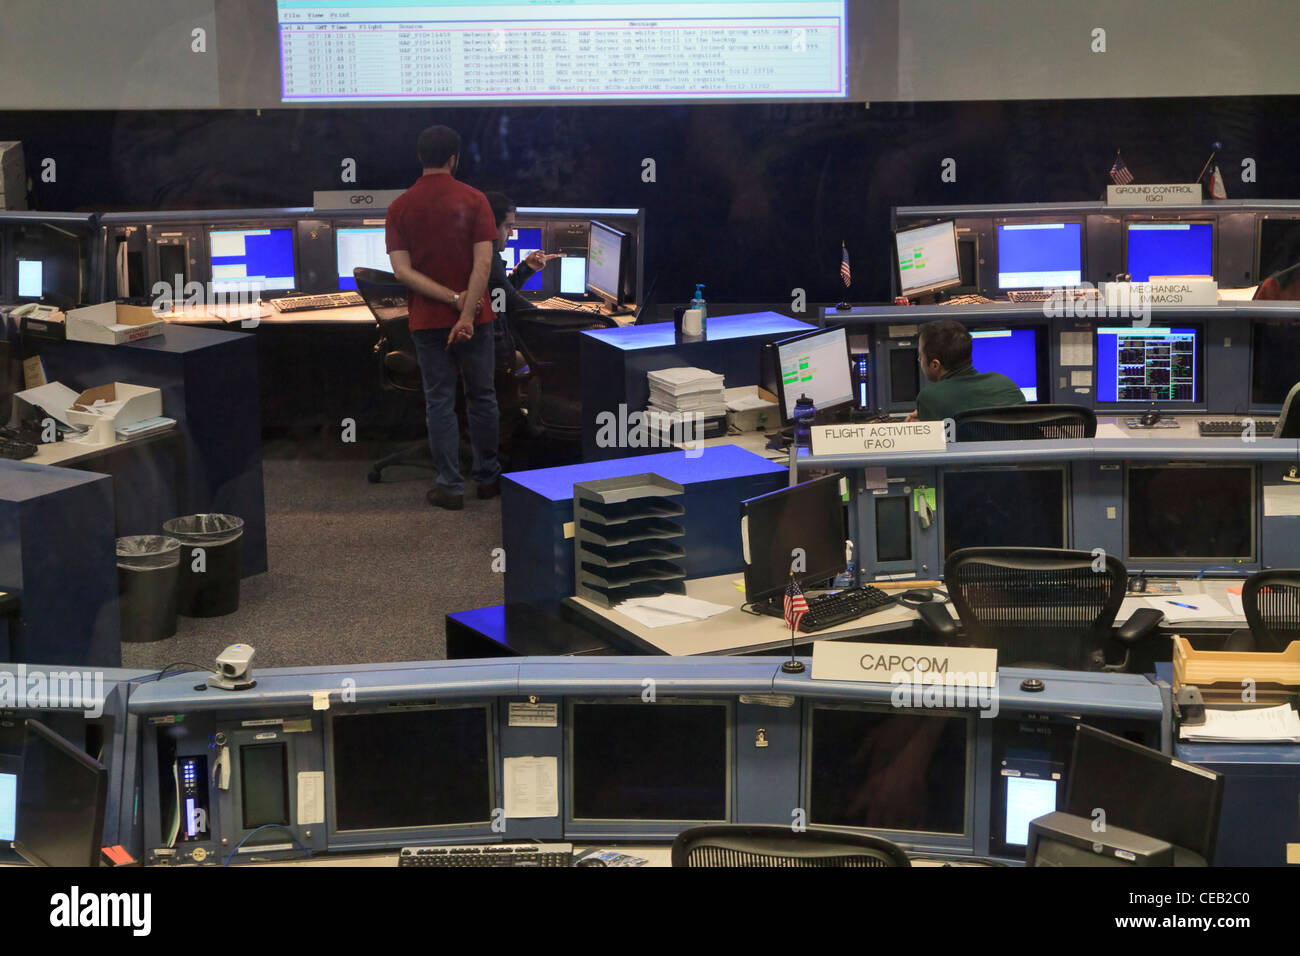 Mission Control Center, Johnson Space Center, Texas. - Stock Image